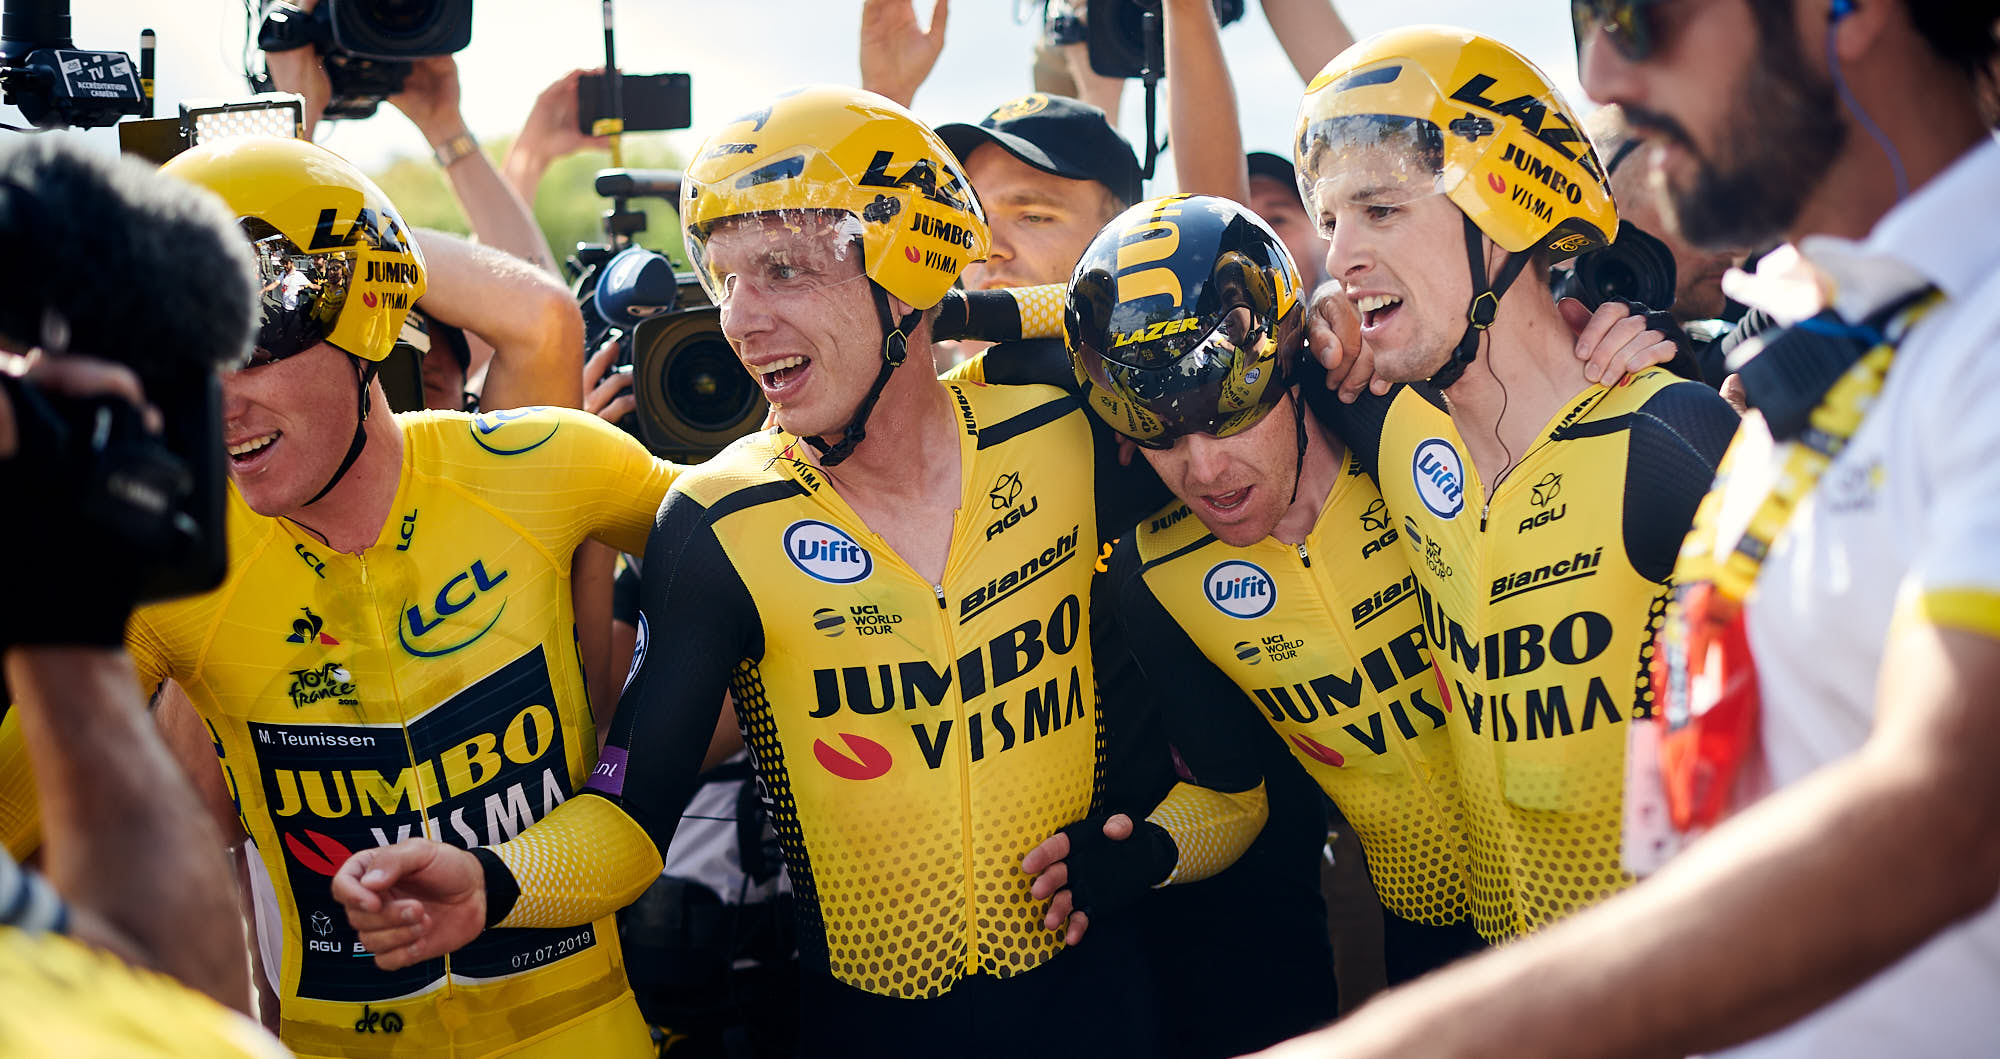 Team Jumbo-Visma riders embrace after winning the 2019 Tour de France team time trial